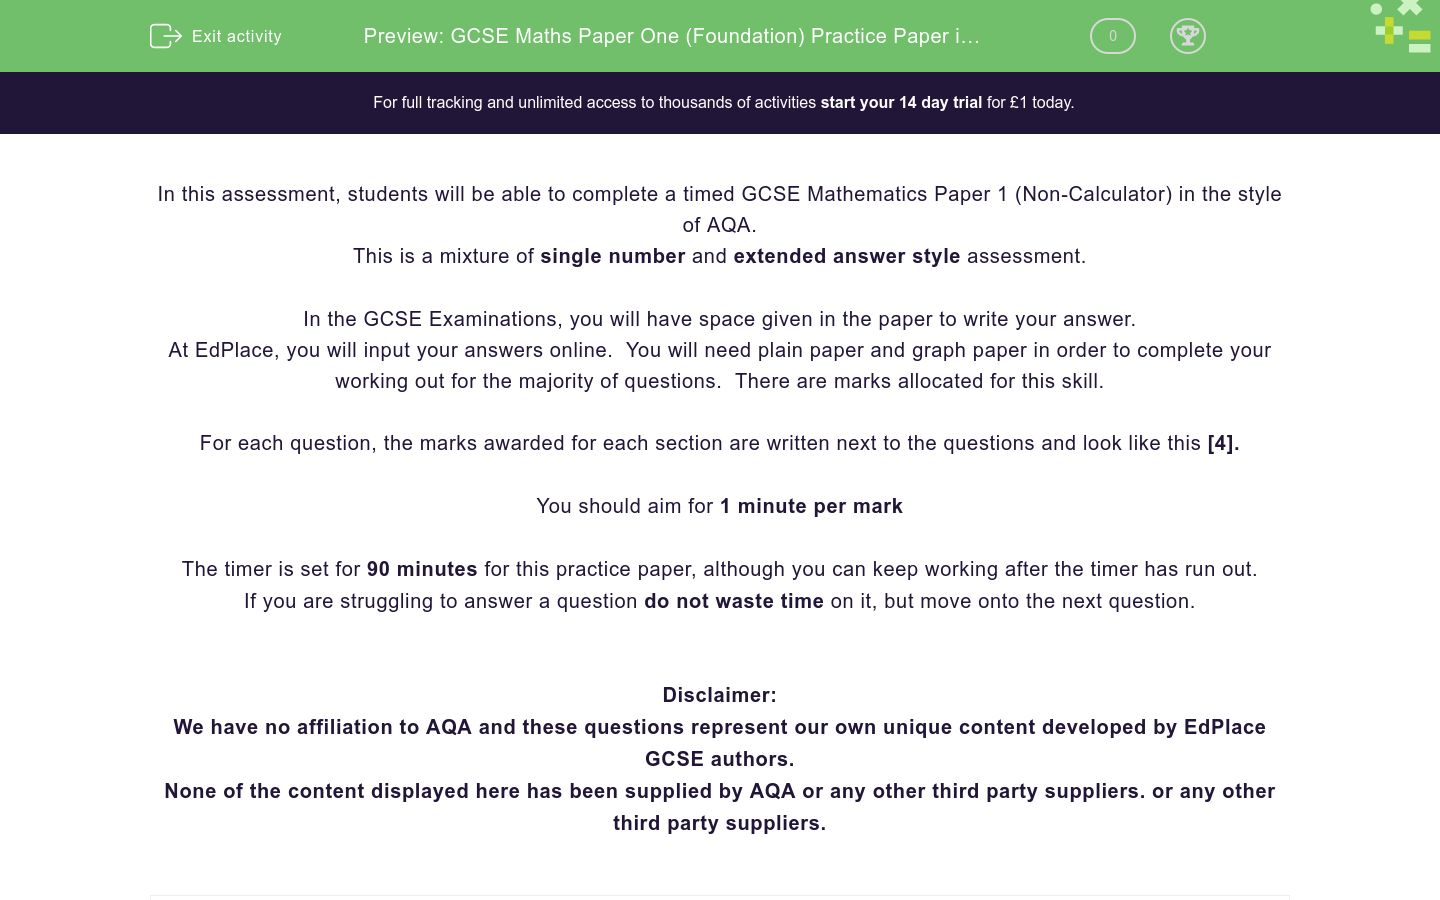 'GCSE Maths Paper One (Foundation) Practice Paper in the Style of AQA - Non Calculator' worksheet